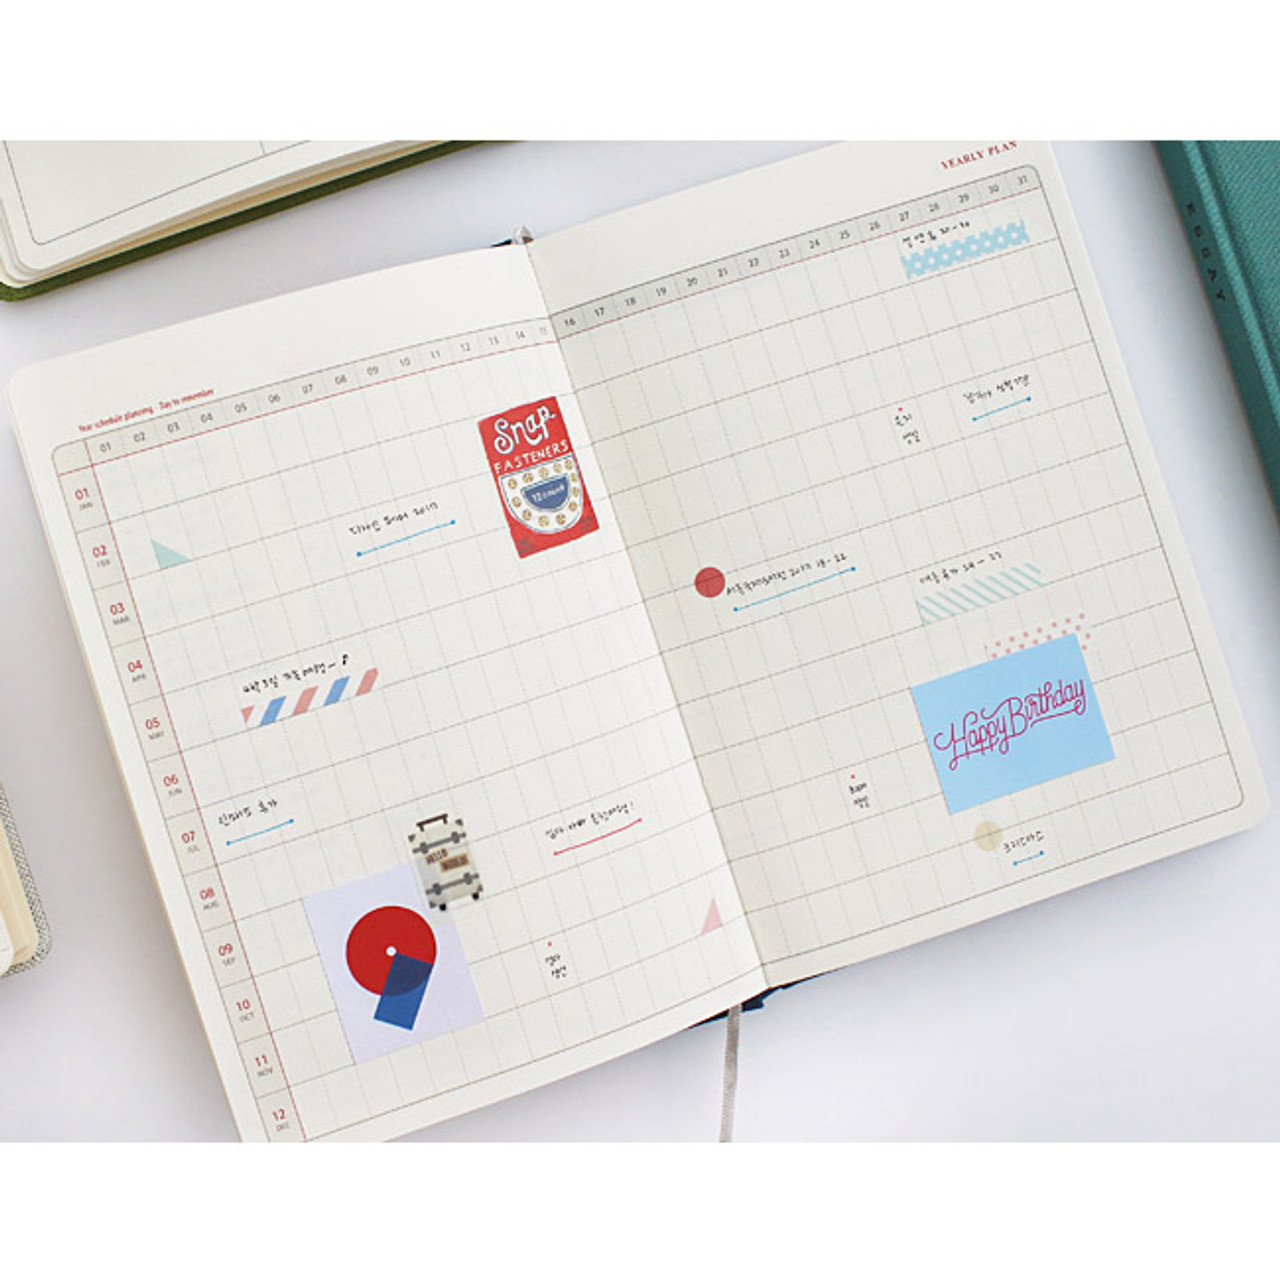 Paperian My Real Story Essay Undated Diary  Fallindesign Yearly Plan   Paperian My Real Story Essay Undated Diary